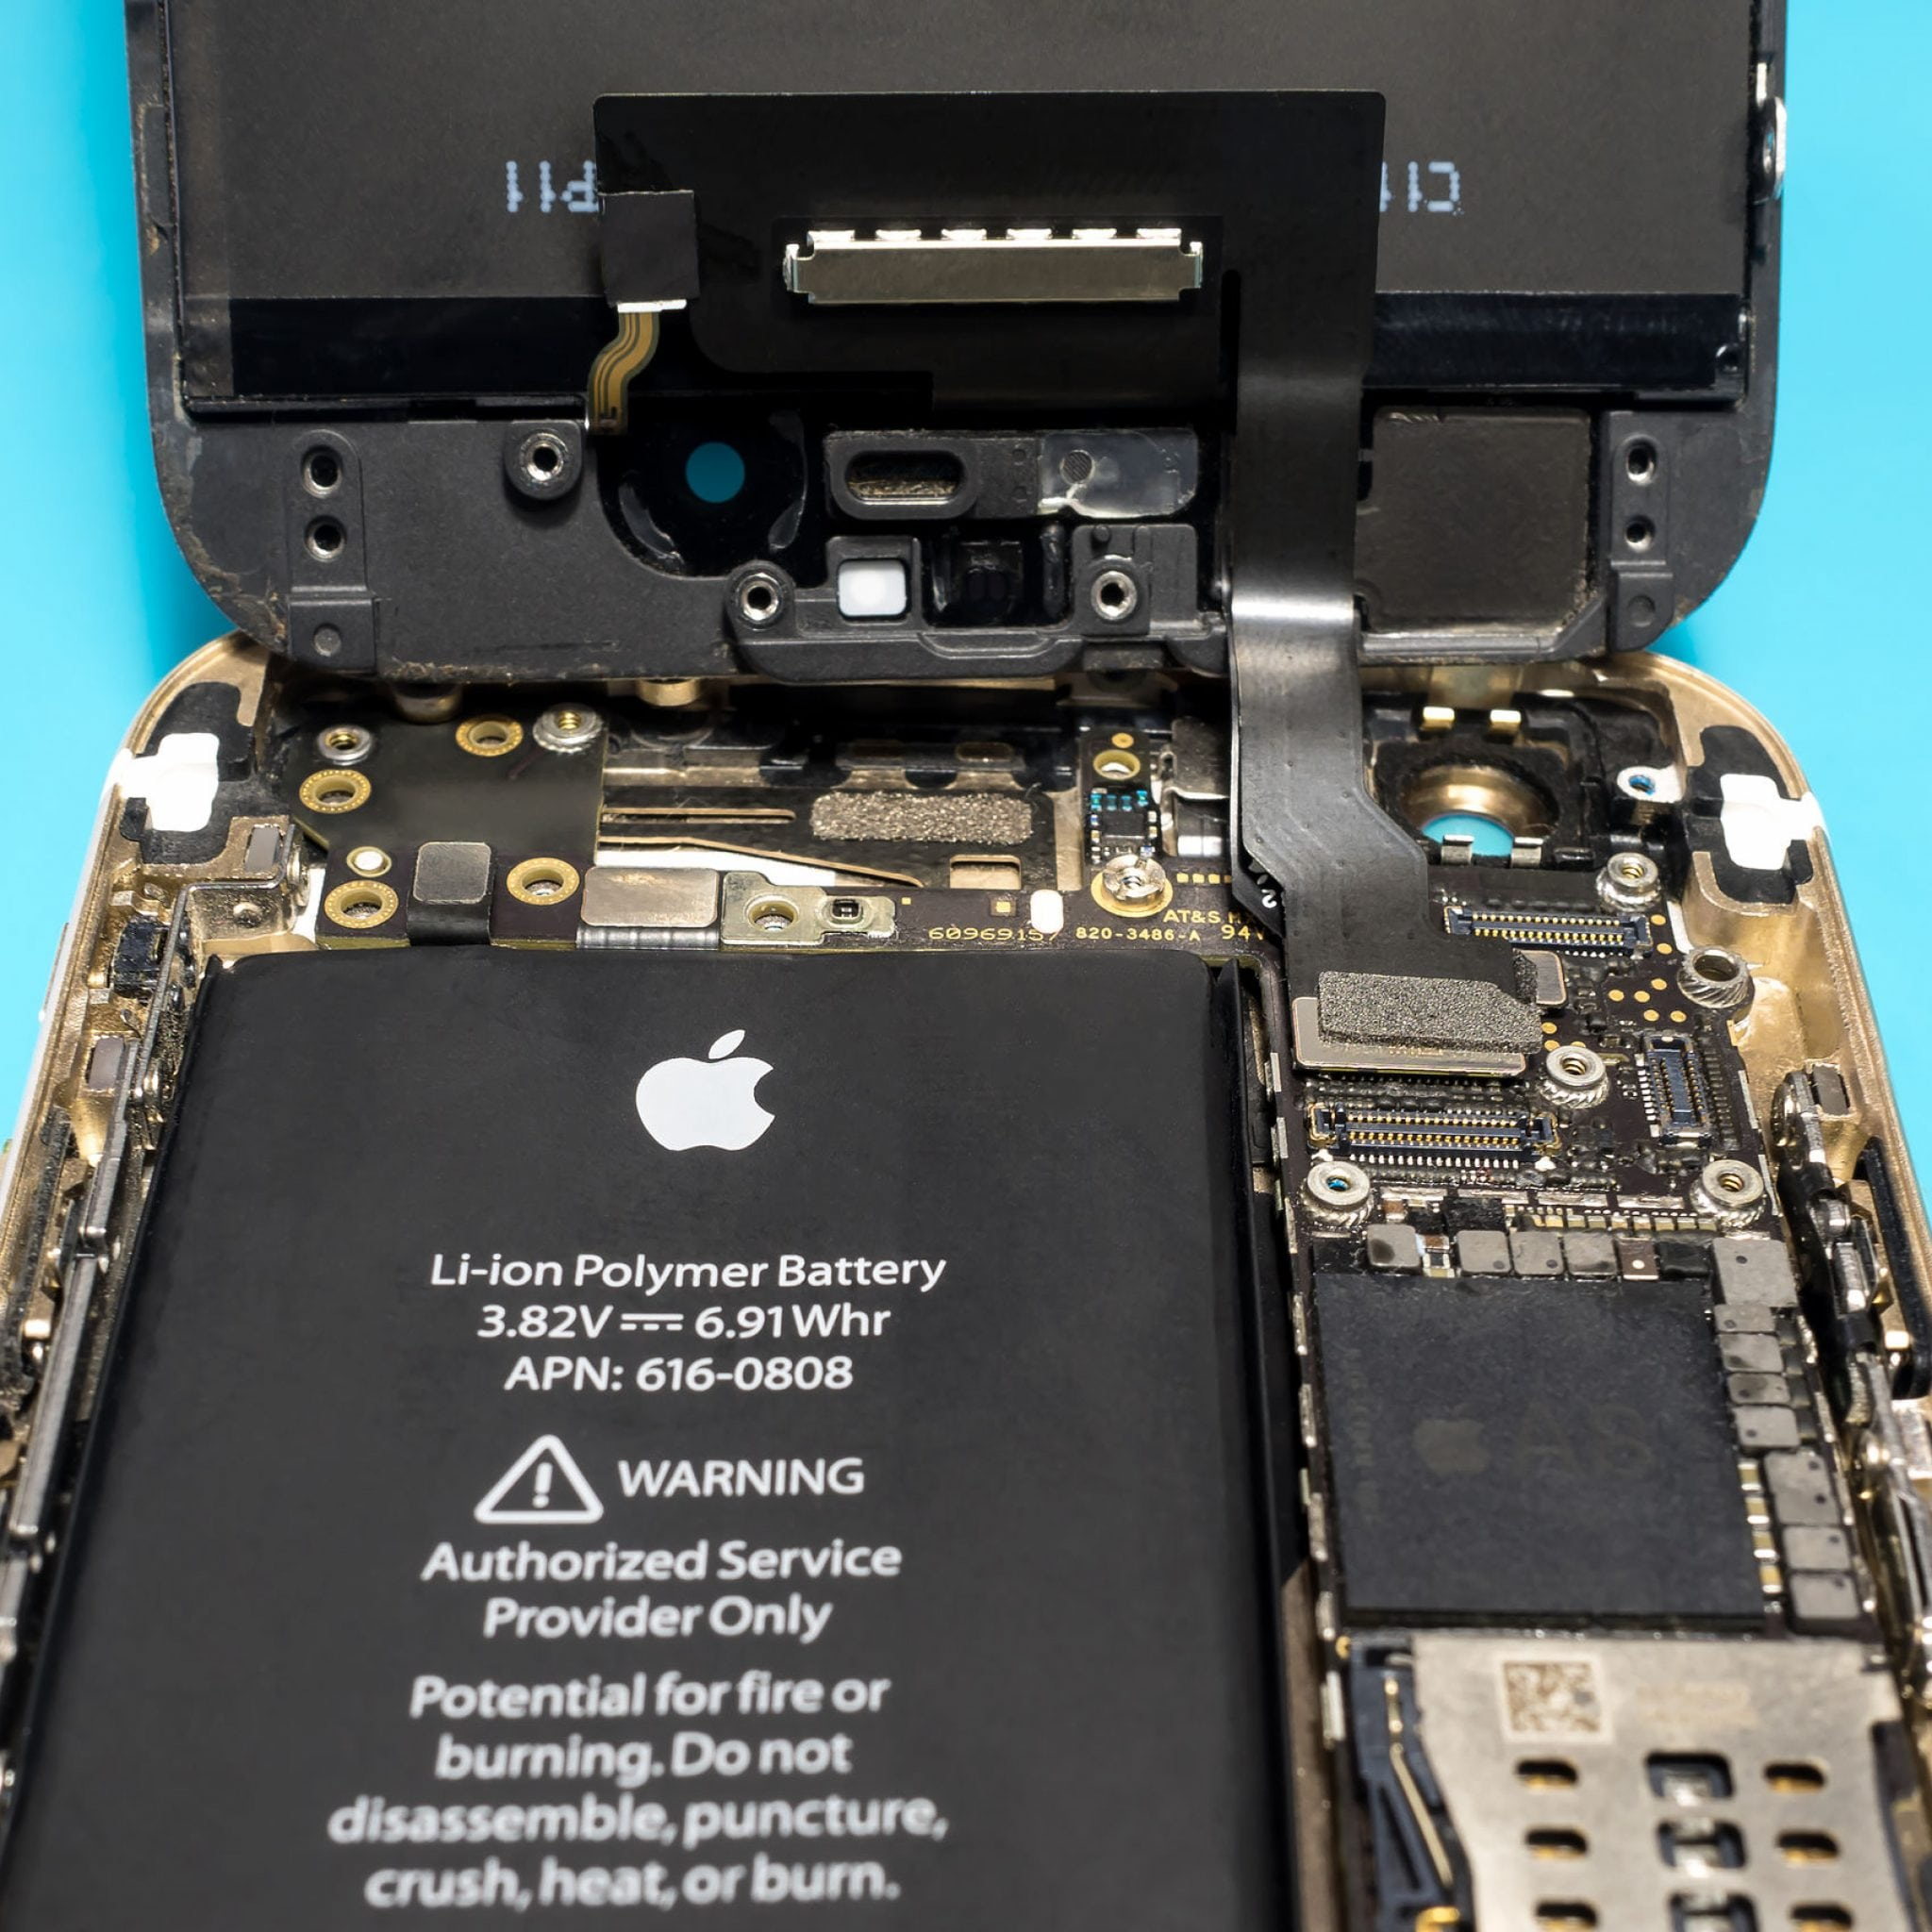 Do you have a right to repair? Inside Apple's repair saga